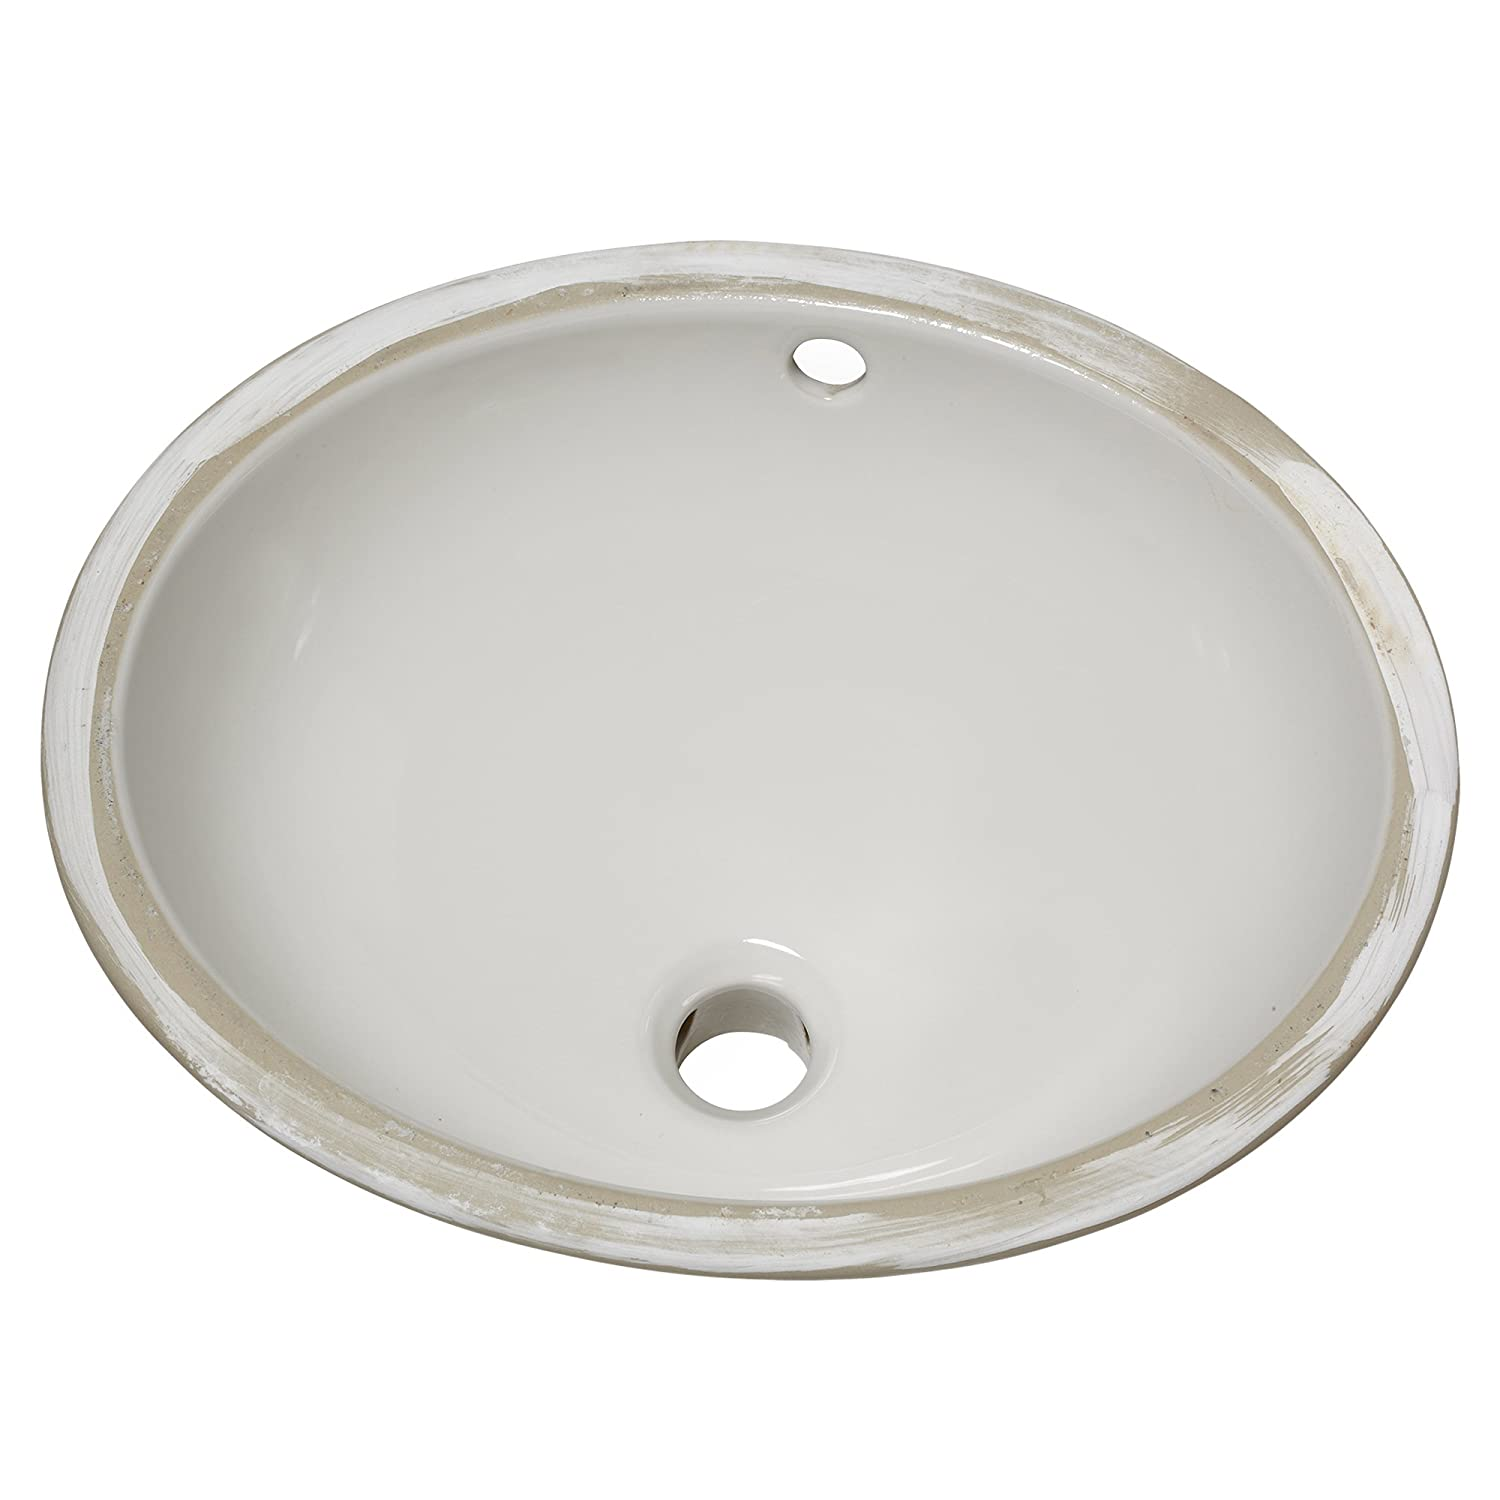 Bathroom Sink Dreamy Person Luxury Bathroom Sink Strainer